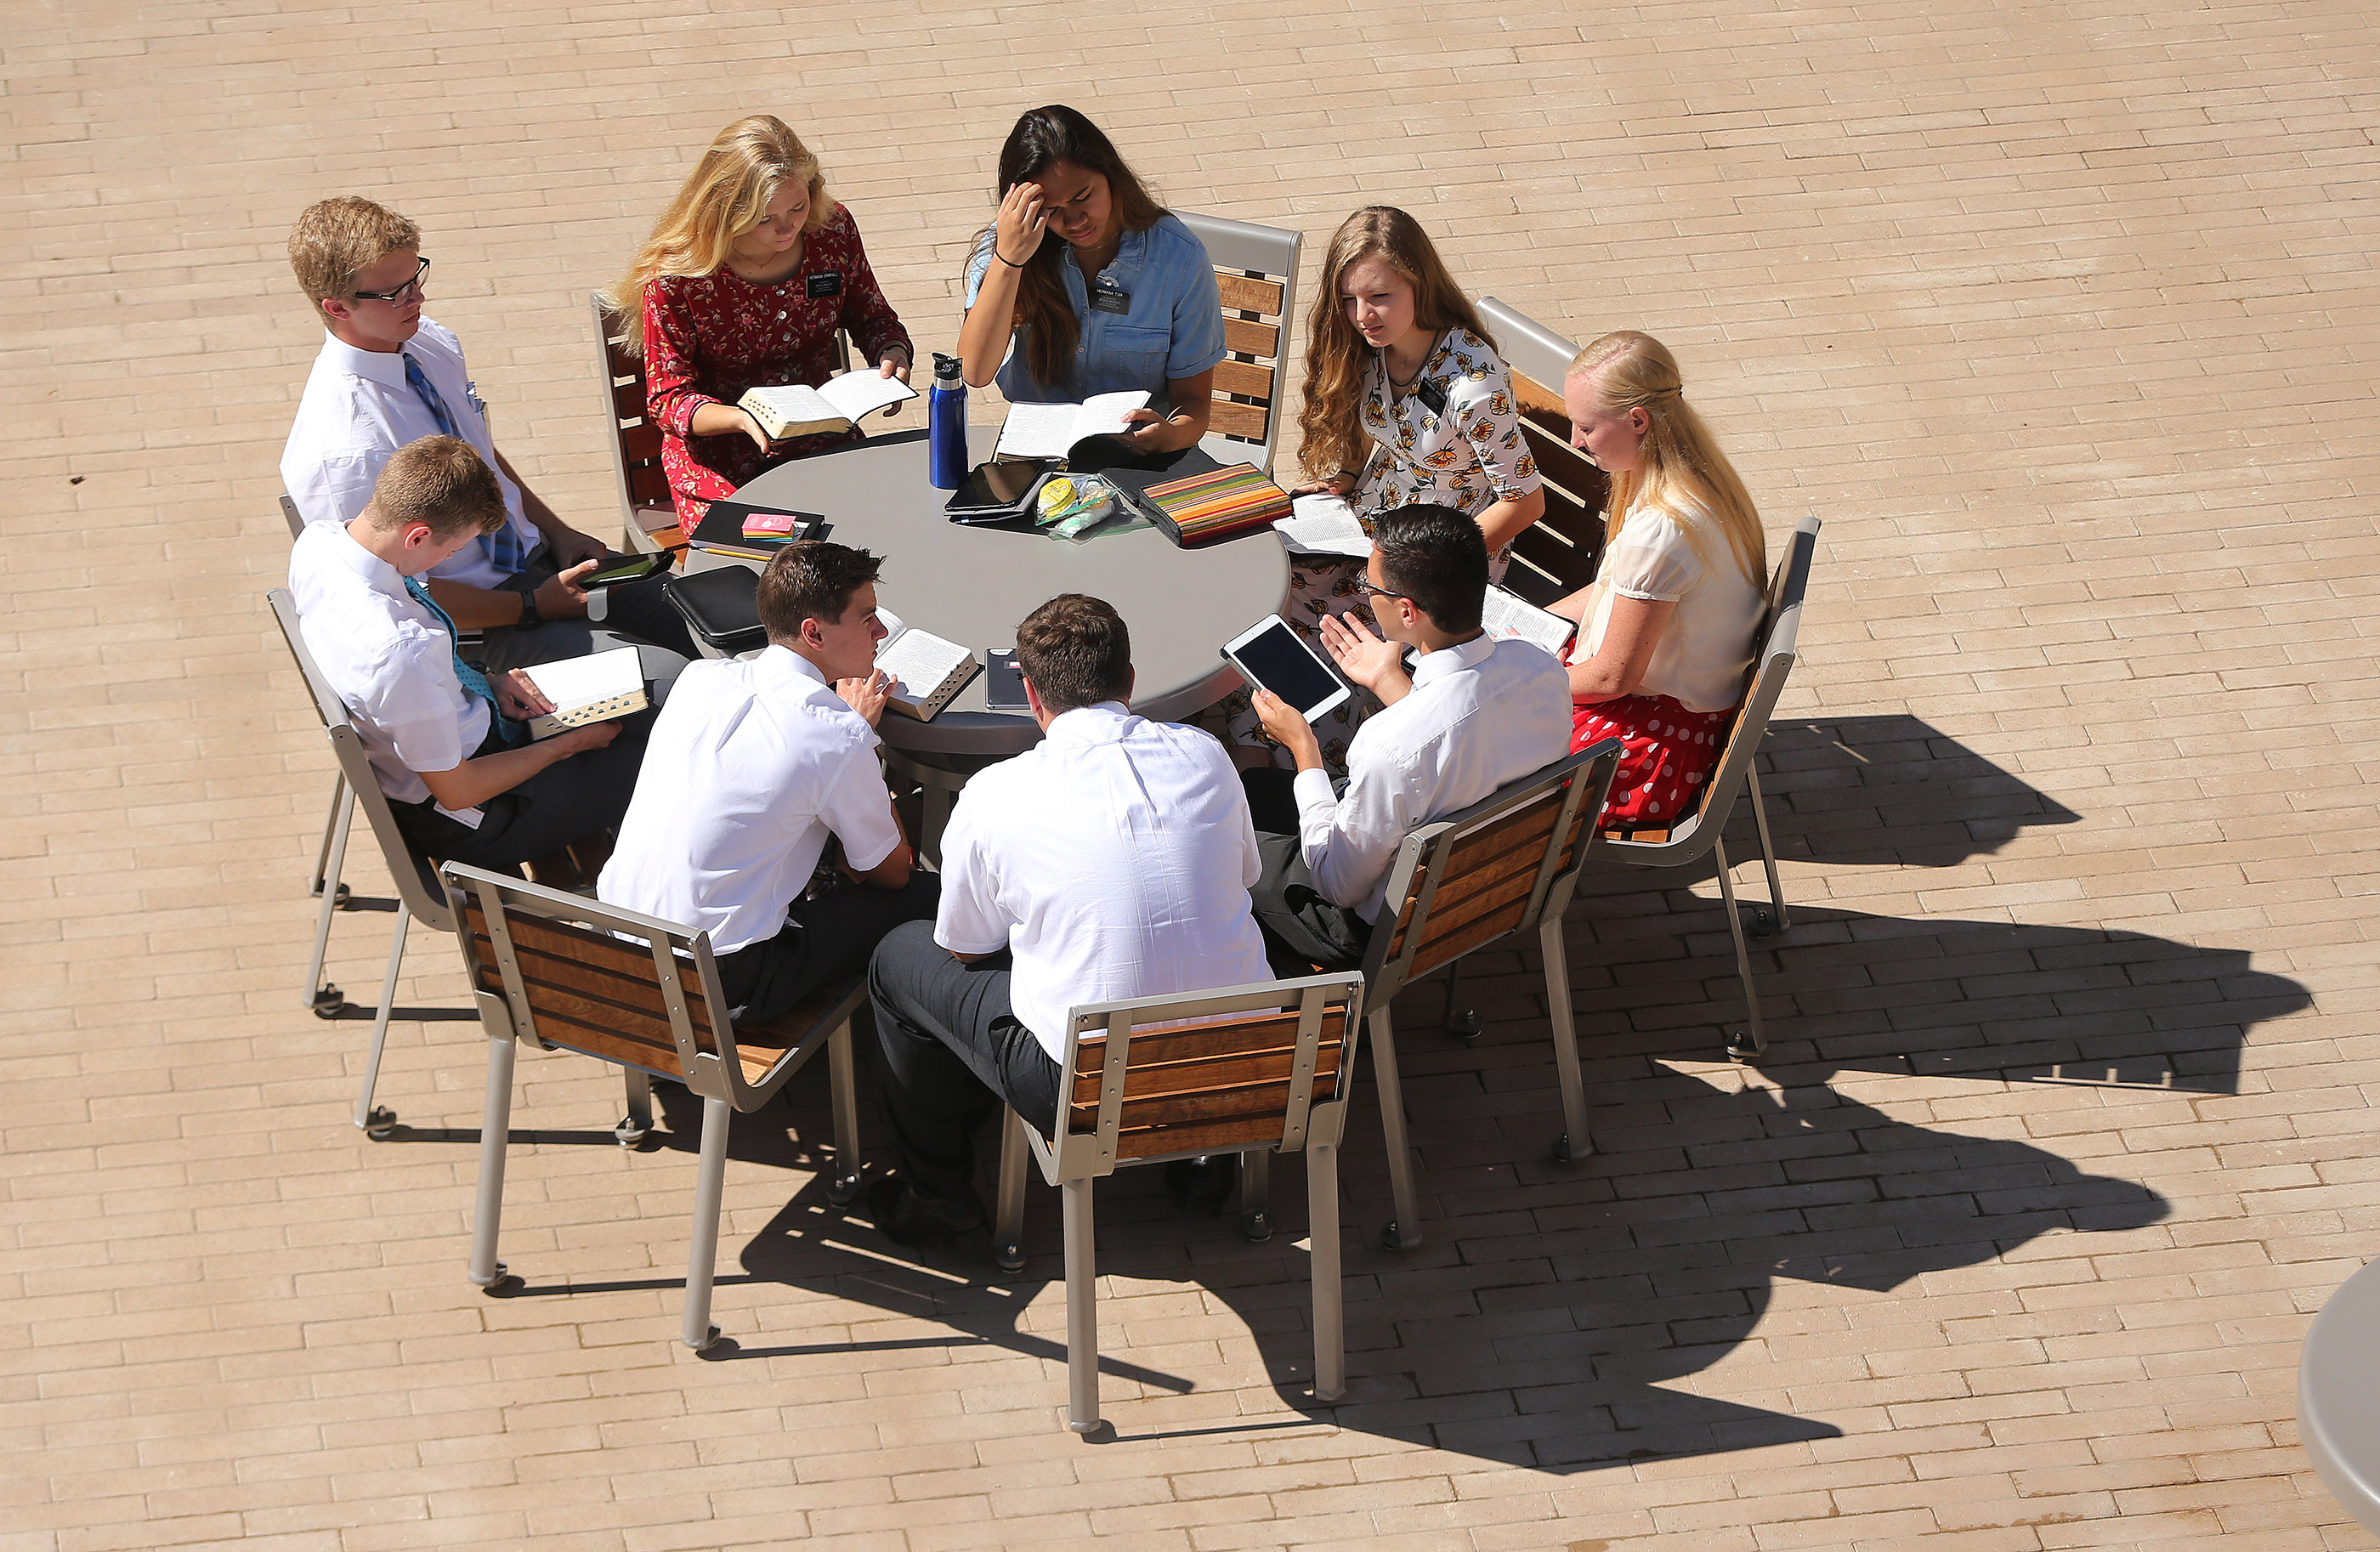 Missionaries study and converse at a table outside in an open-space setting at the Provo Missionary Training Center in Provo on Wednesday, July 26, 2017.